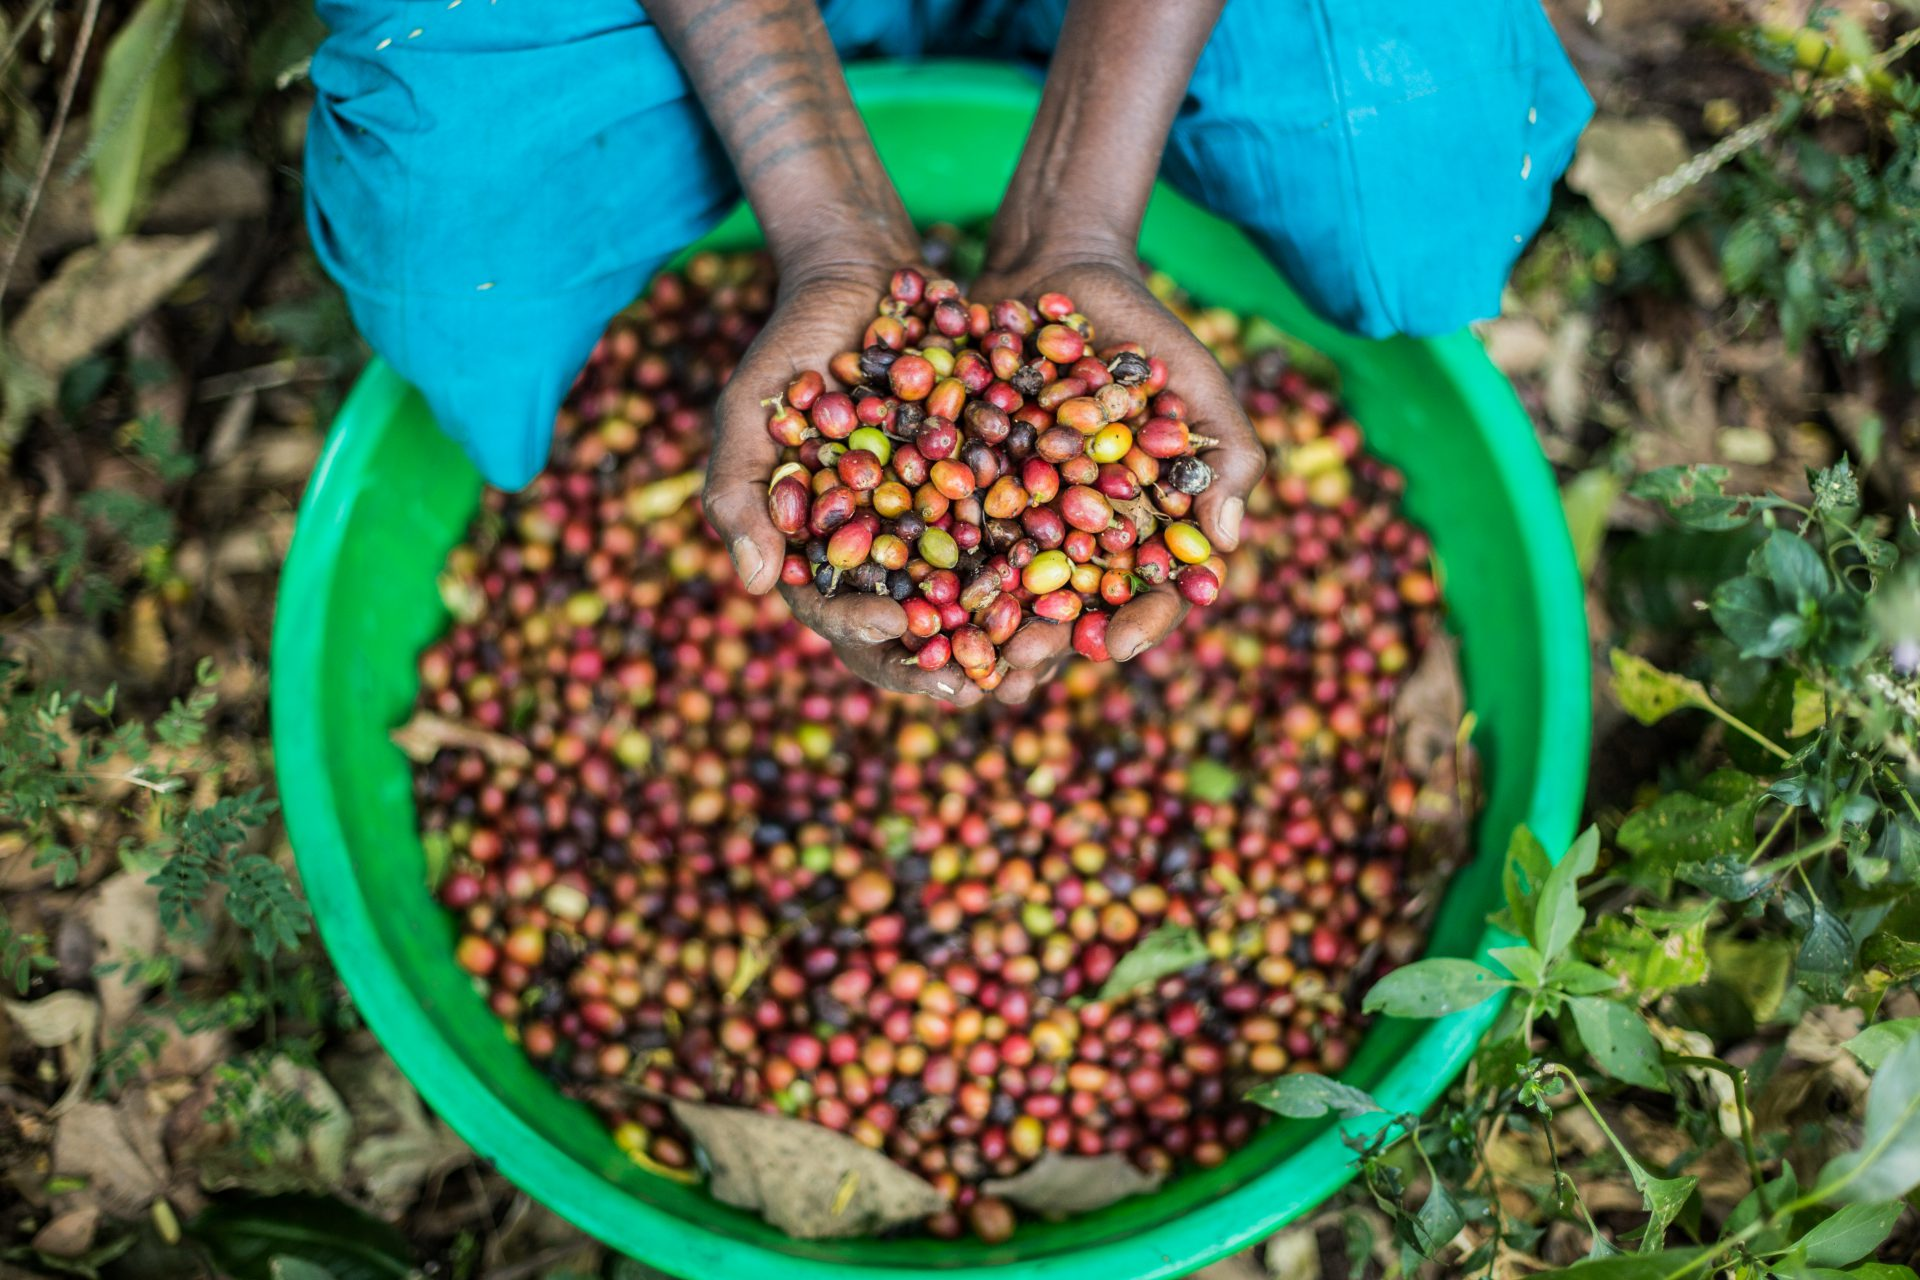 Medihanit Semure, showing the coffee beans she picked at her farm in Woynima, West Gojam, Ethiopia. ©WaterAid/Genaye Eshetu